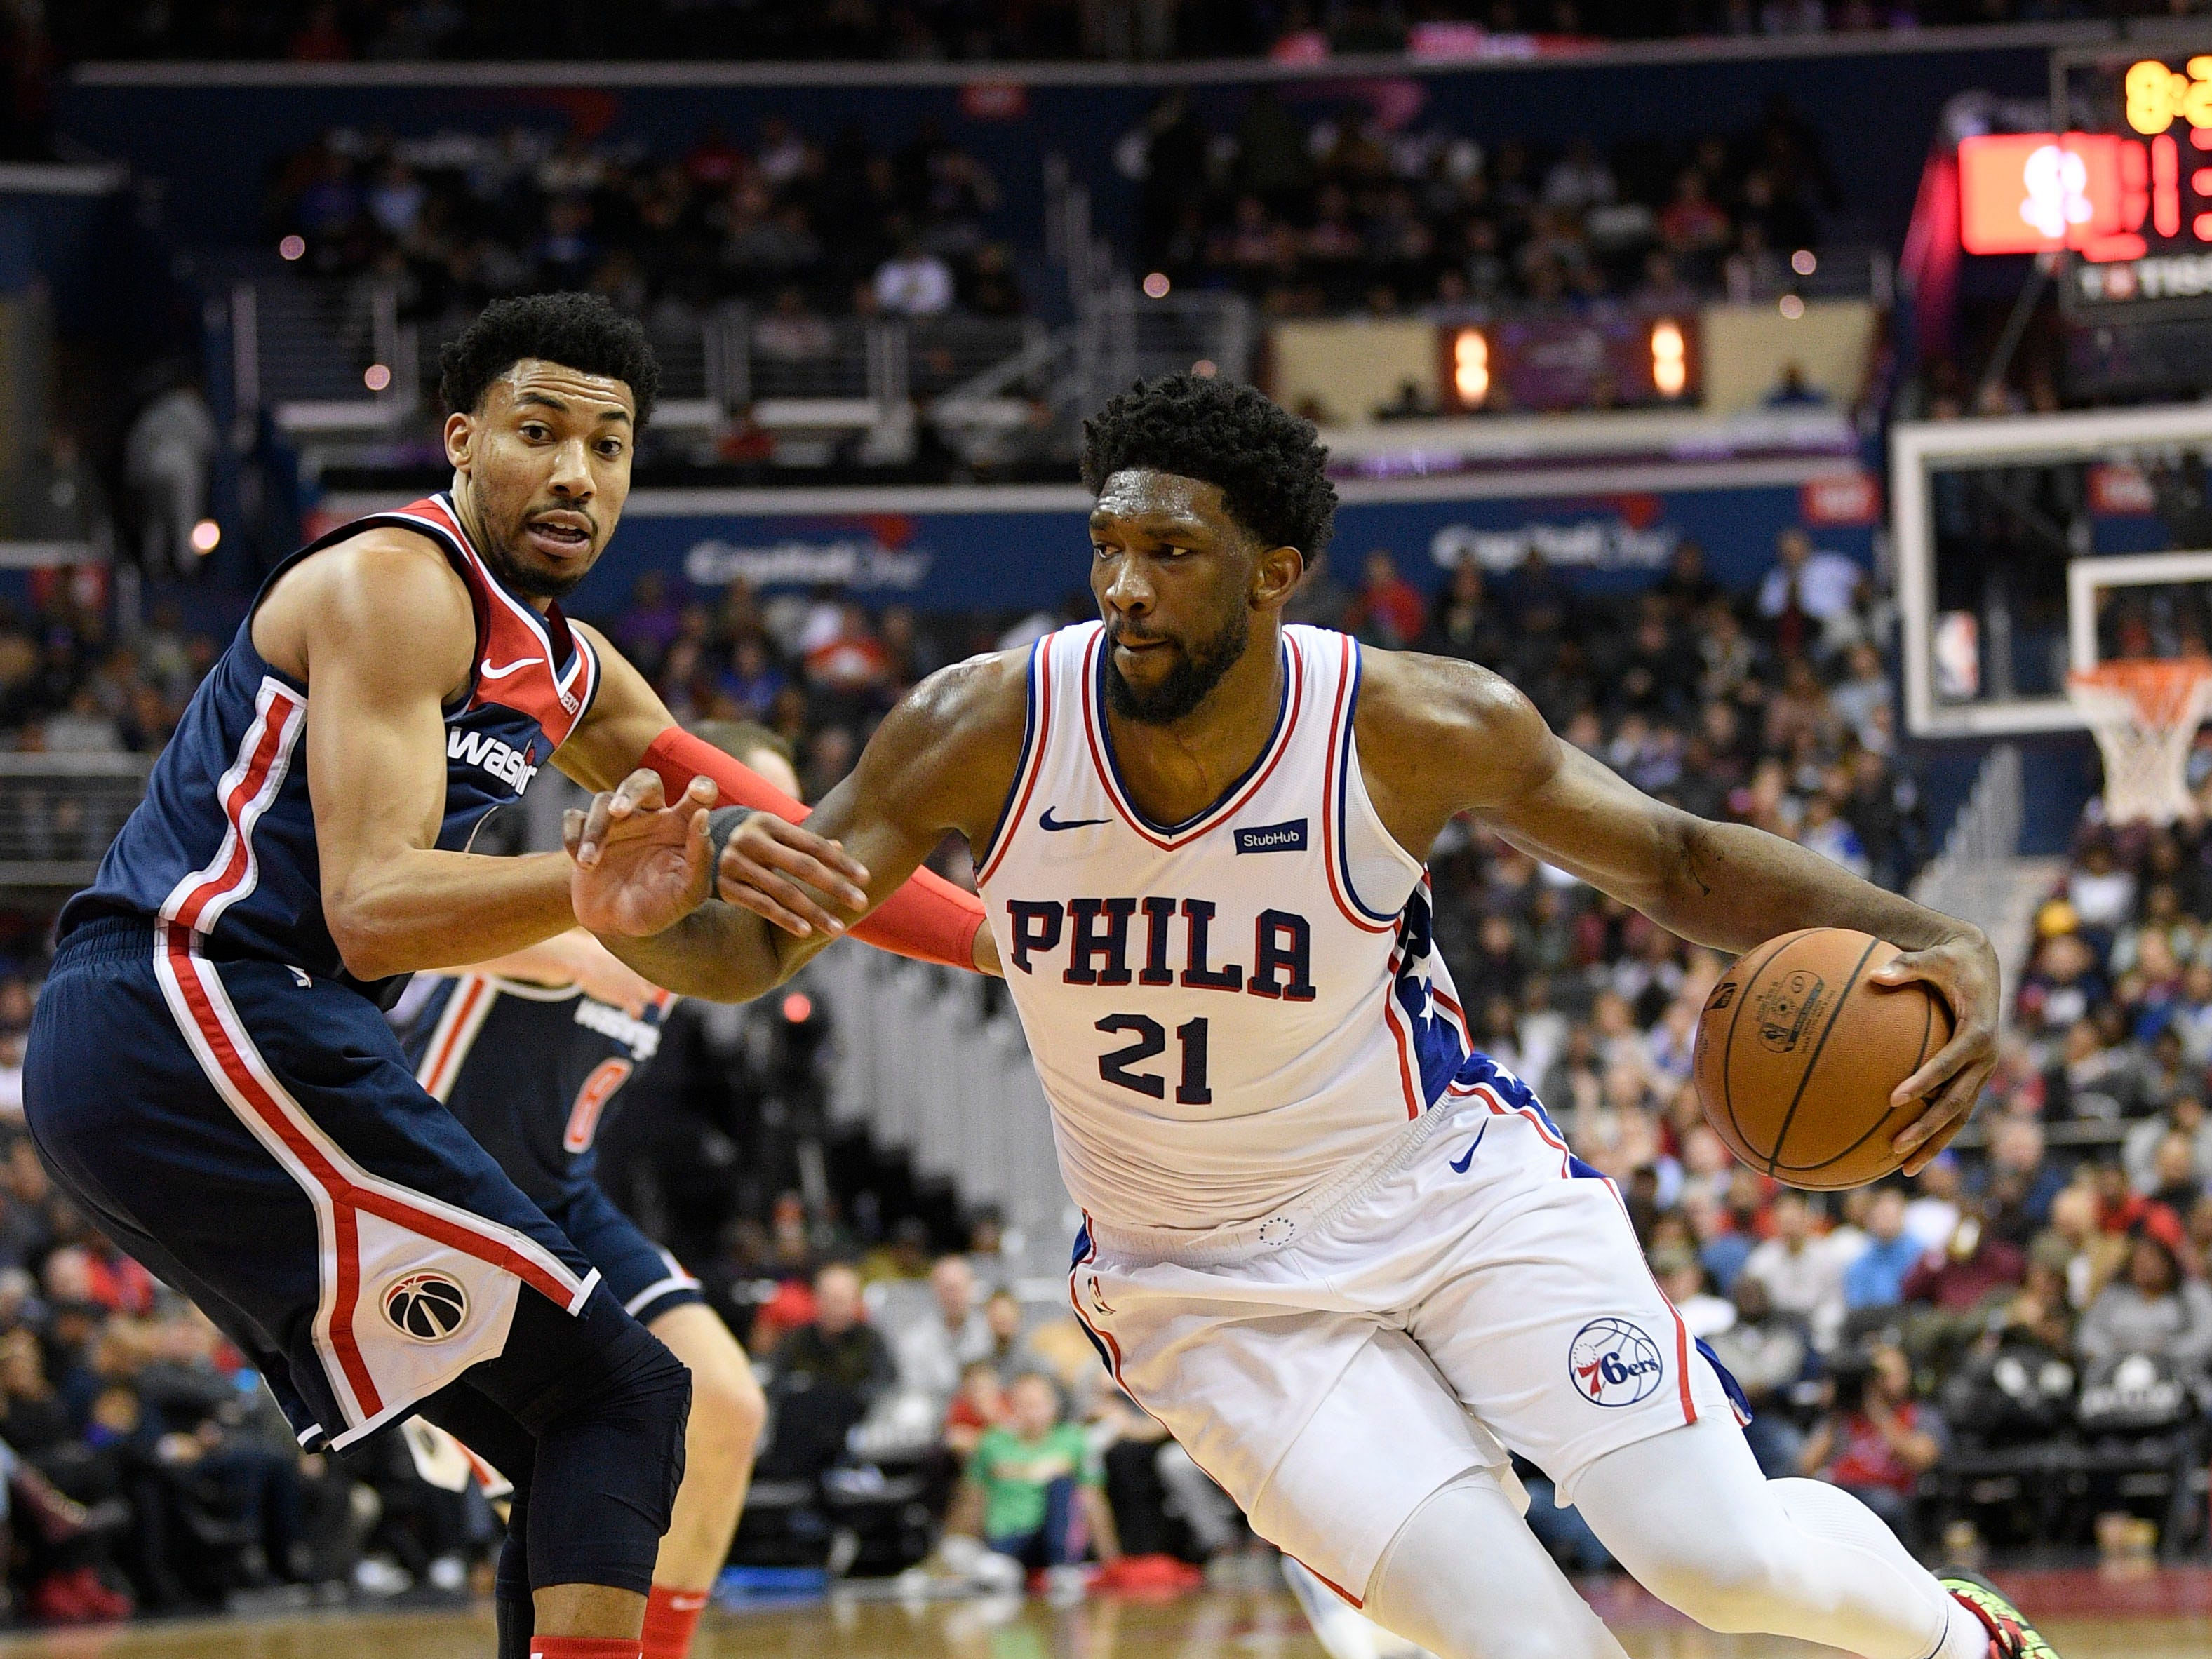 Philadelphia 76ers center Joel Embiid (21) dribbles the ball against Washington Wizards forward Otto Porter Jr., left, during the first half of an NBA basketball game, Wednesday, Jan. 9, 2019, in Washington. (AP Photo/Nick Wass)